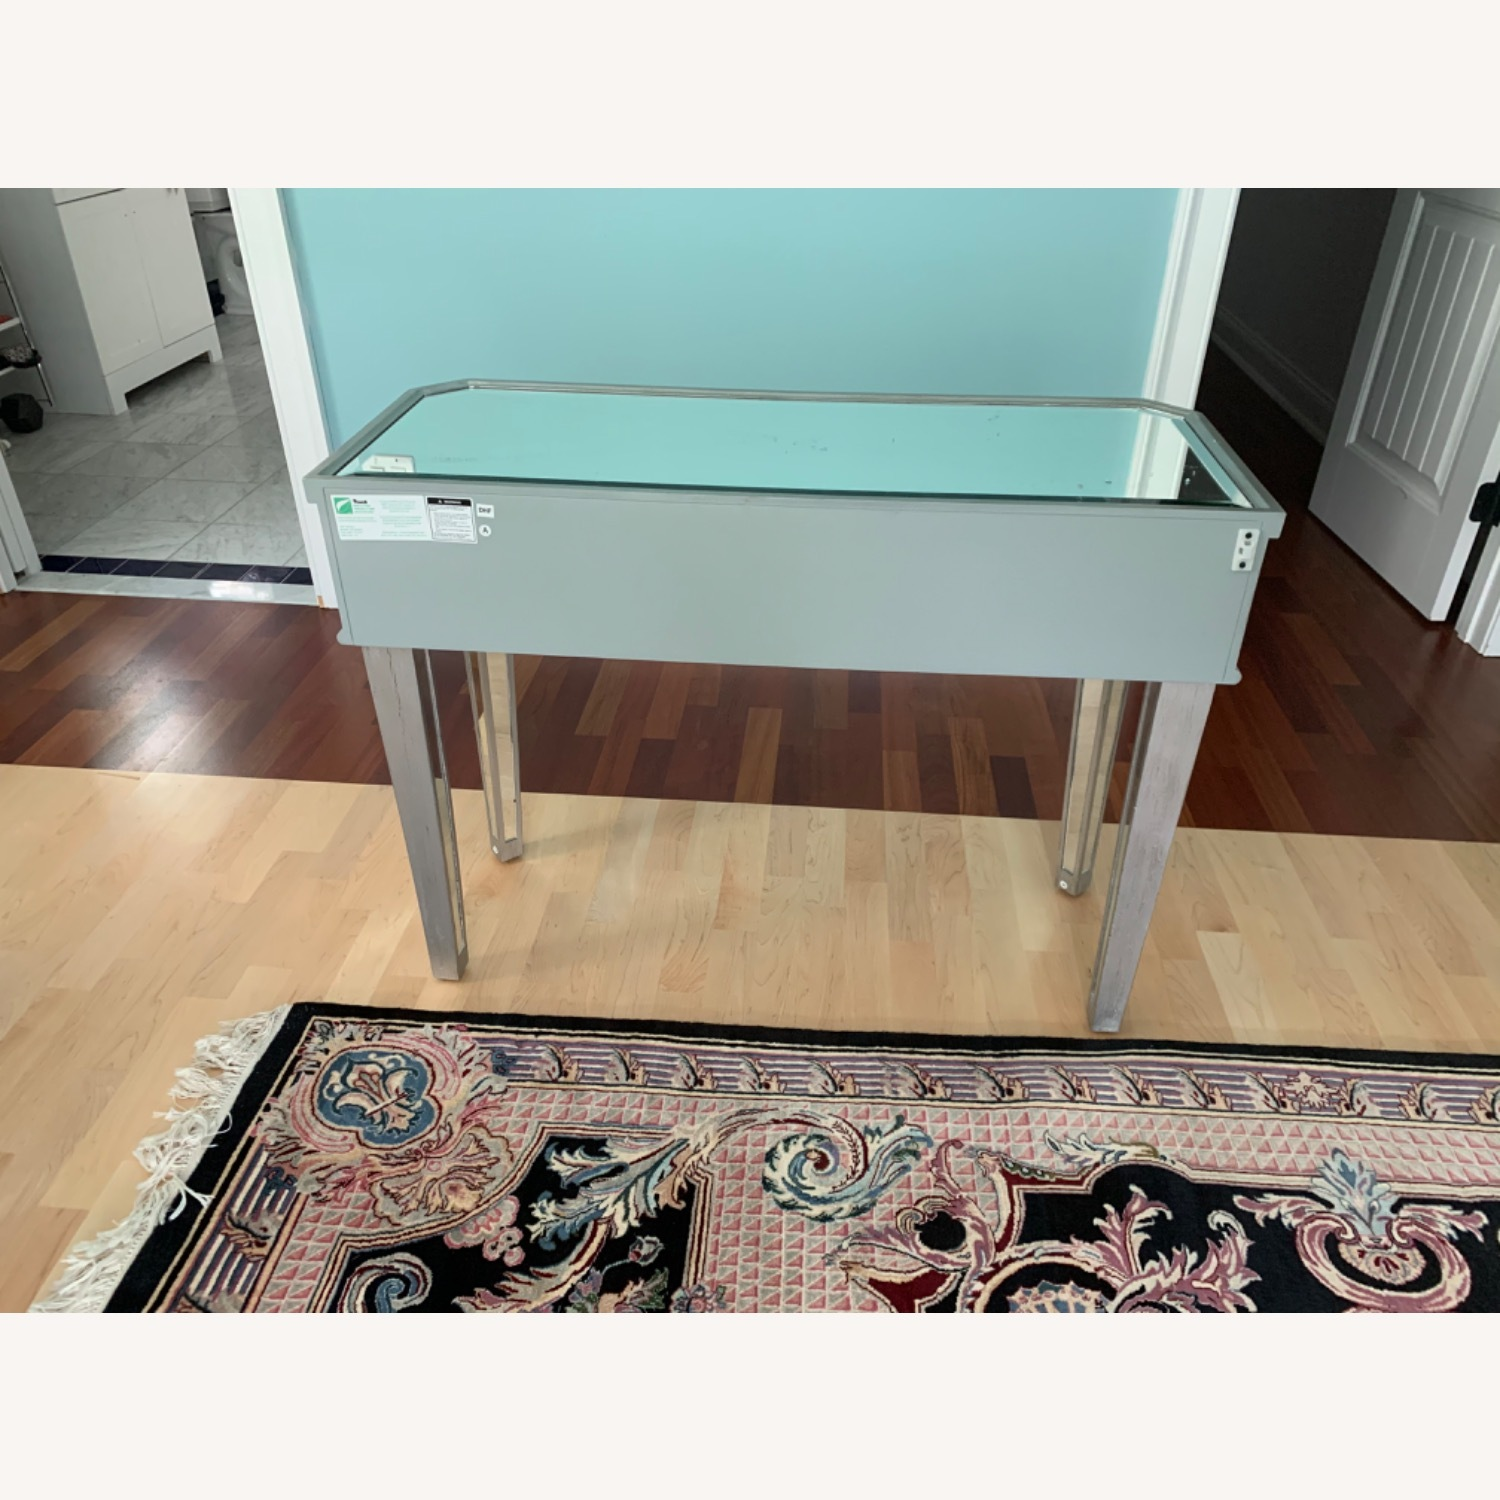 Powell Furniture Mirrored Table - image-4